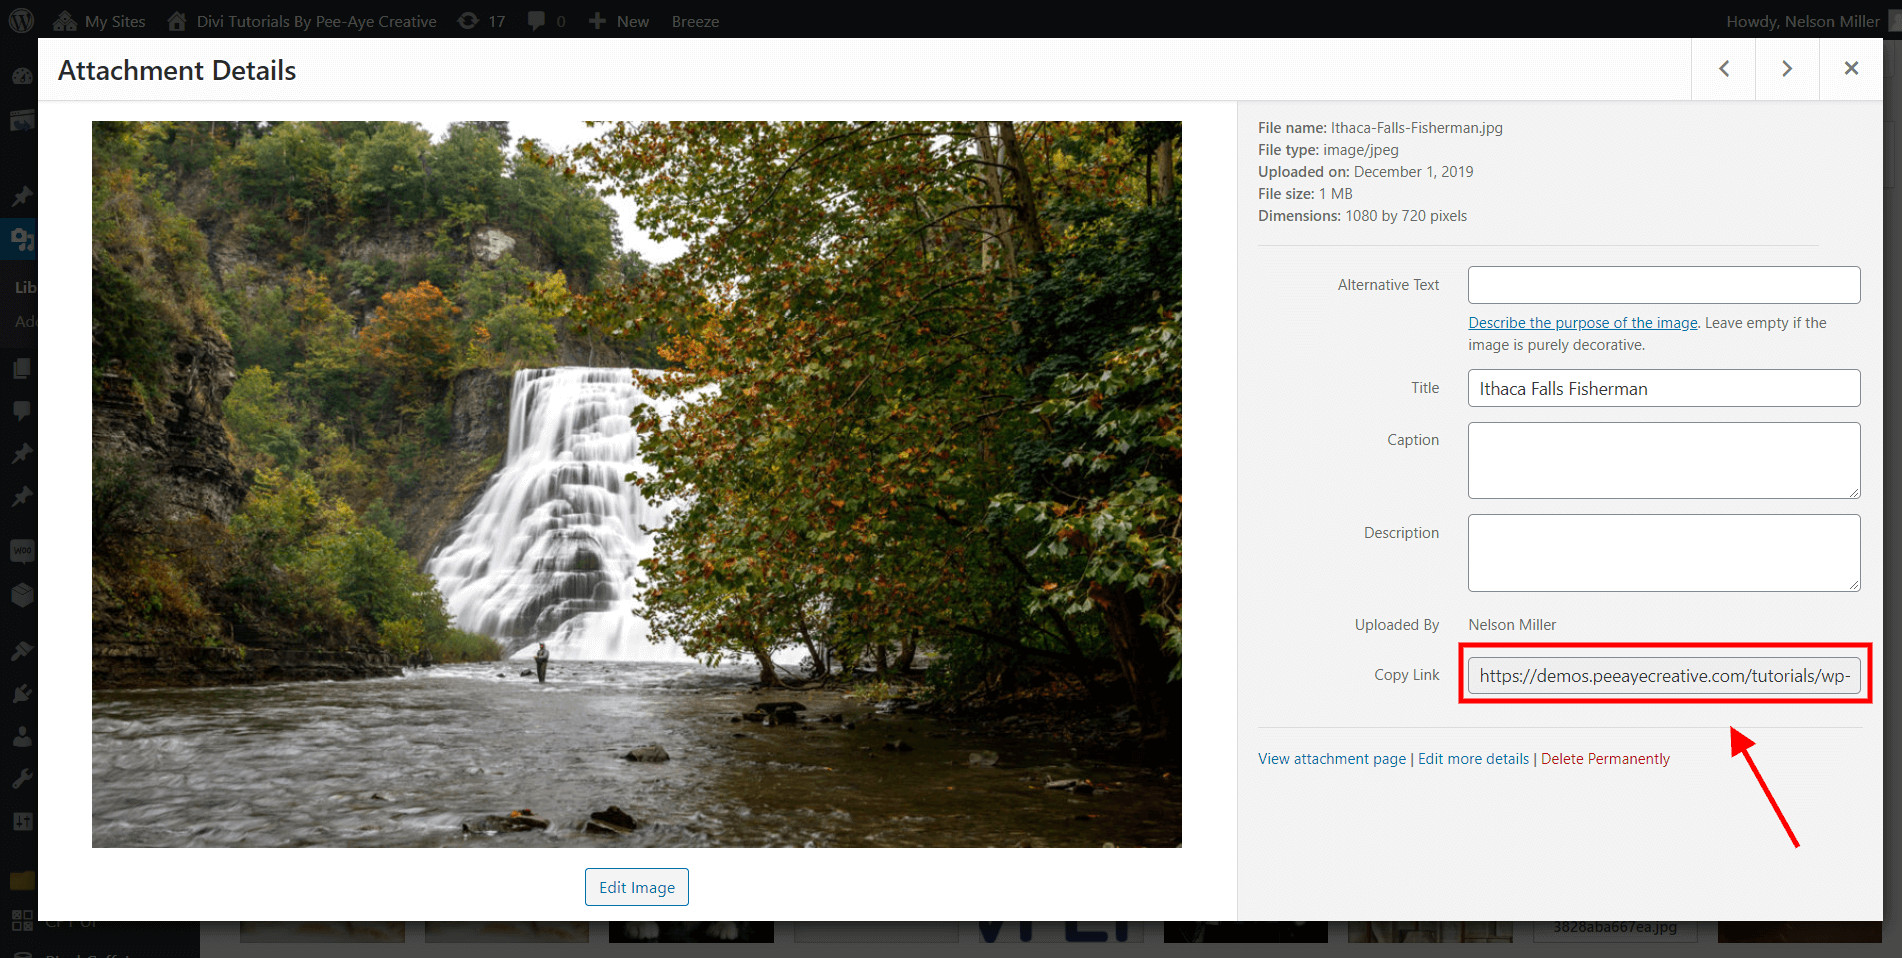 copy the link to the image to add it to the Divi menu item